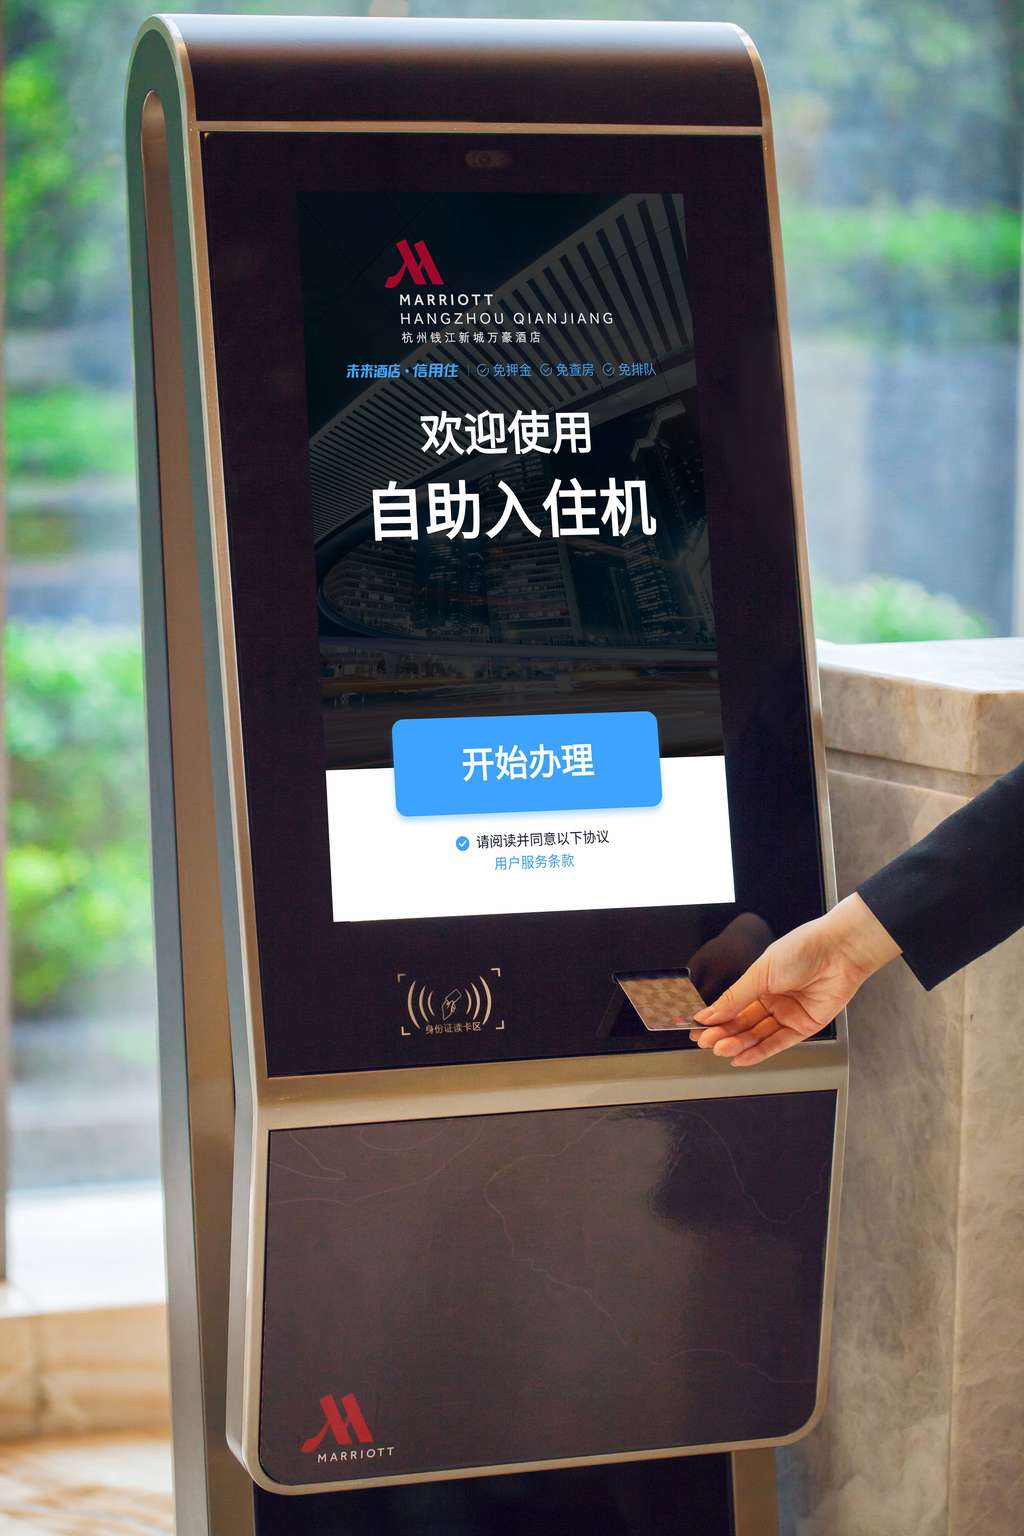 Joint Venture of Alibaba Group and Marriott International Trials Facial Recognition Check-In Technology